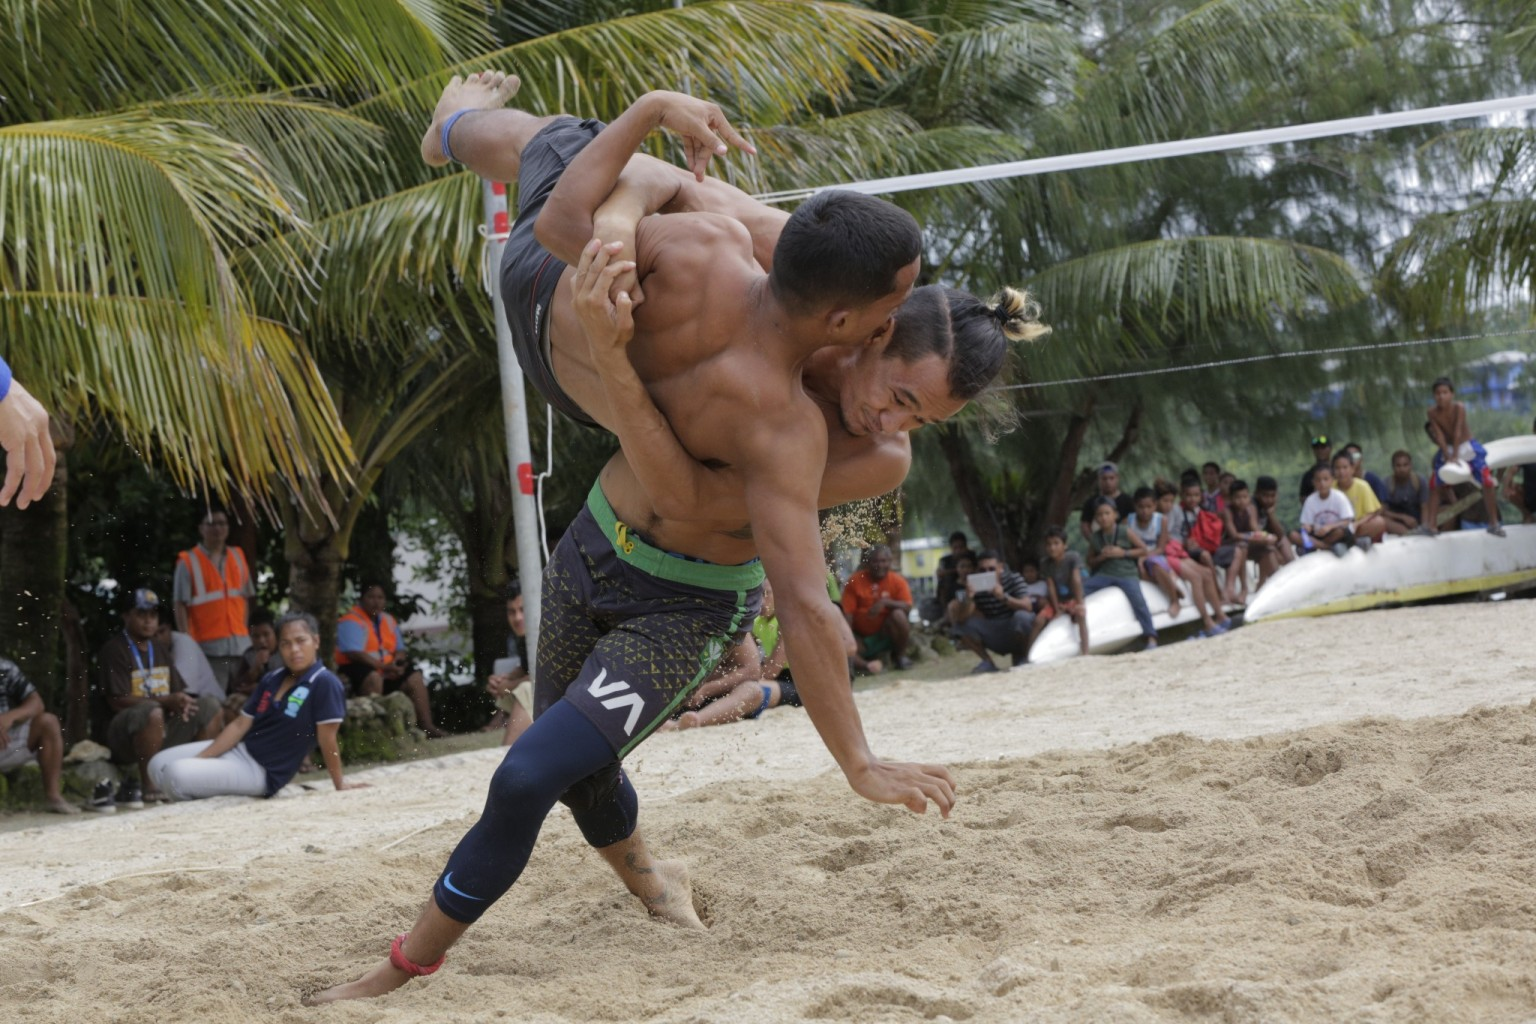 Palau Dominate the wrestling competition - 2018 Micronesian